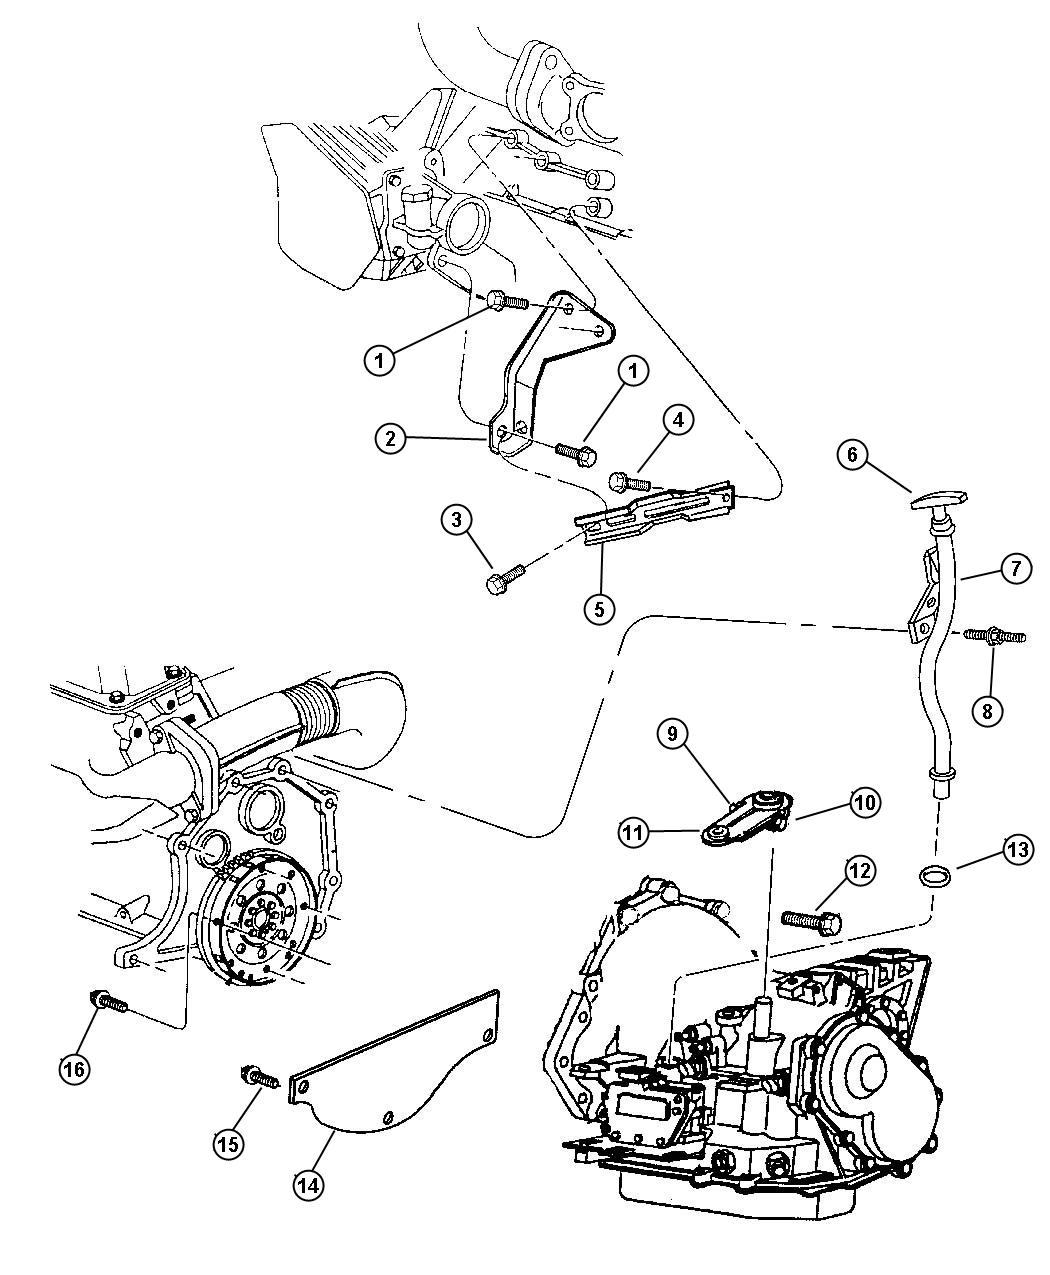 1999 Plymouth Grand Voyager Transaxle Mounting and Misc. Parts